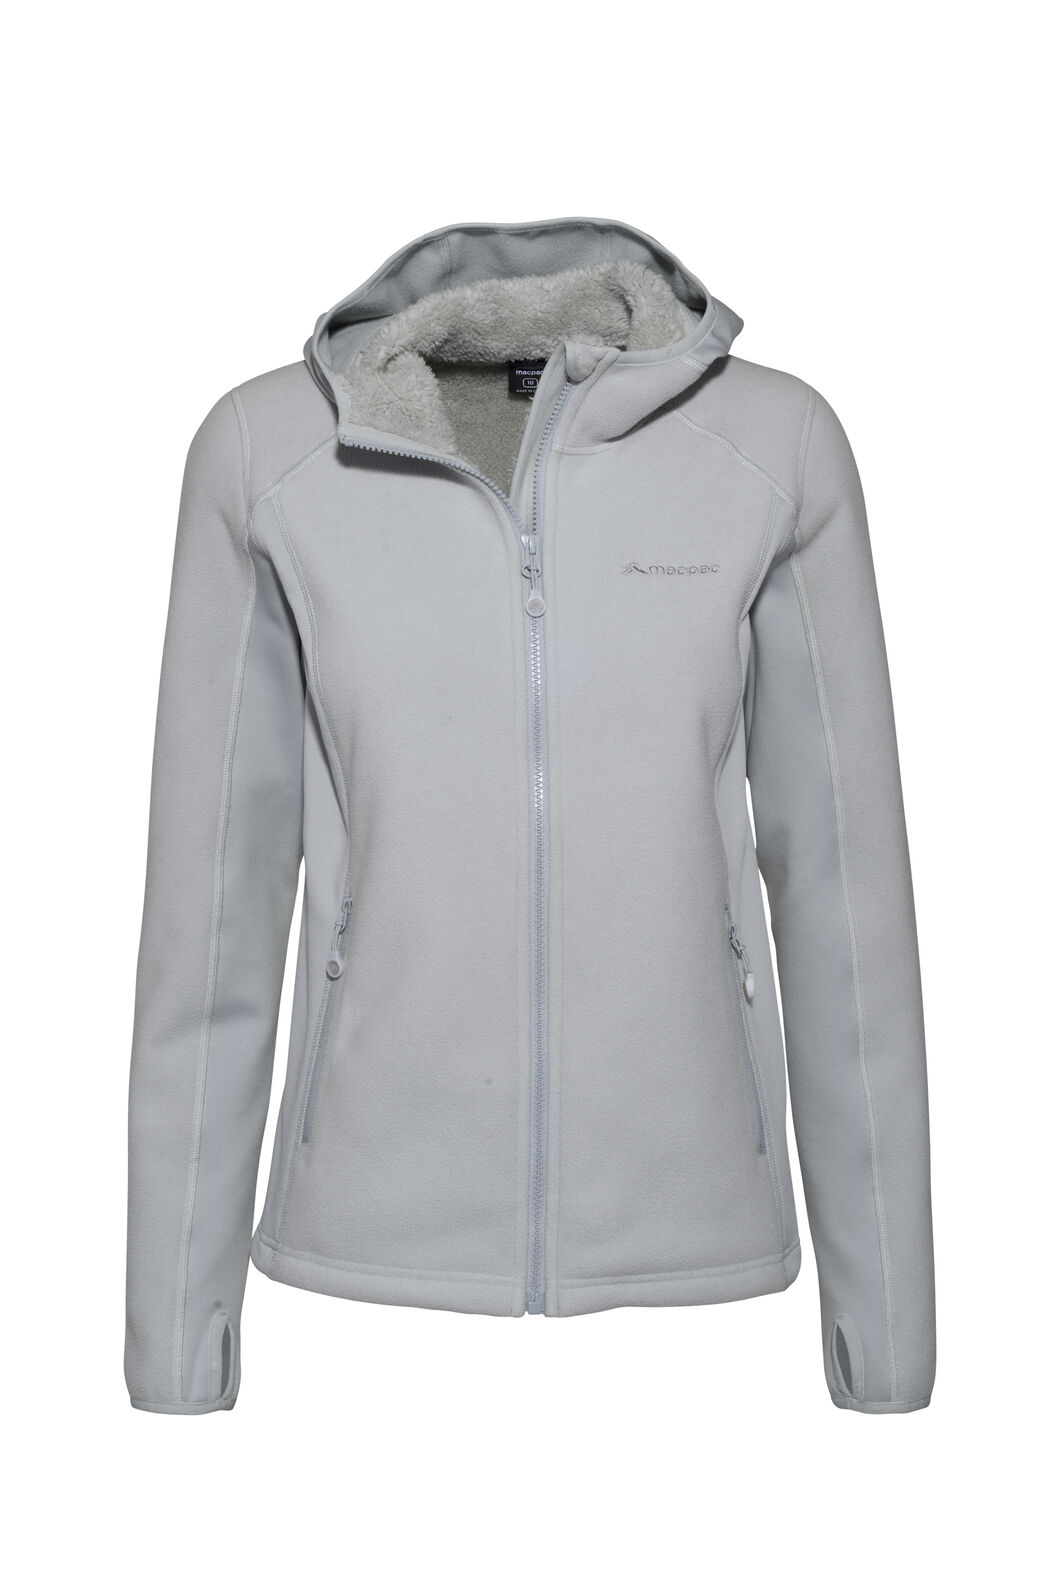 Macpac Mountain Hooded Jacket — Women's, High Rise, hi-res